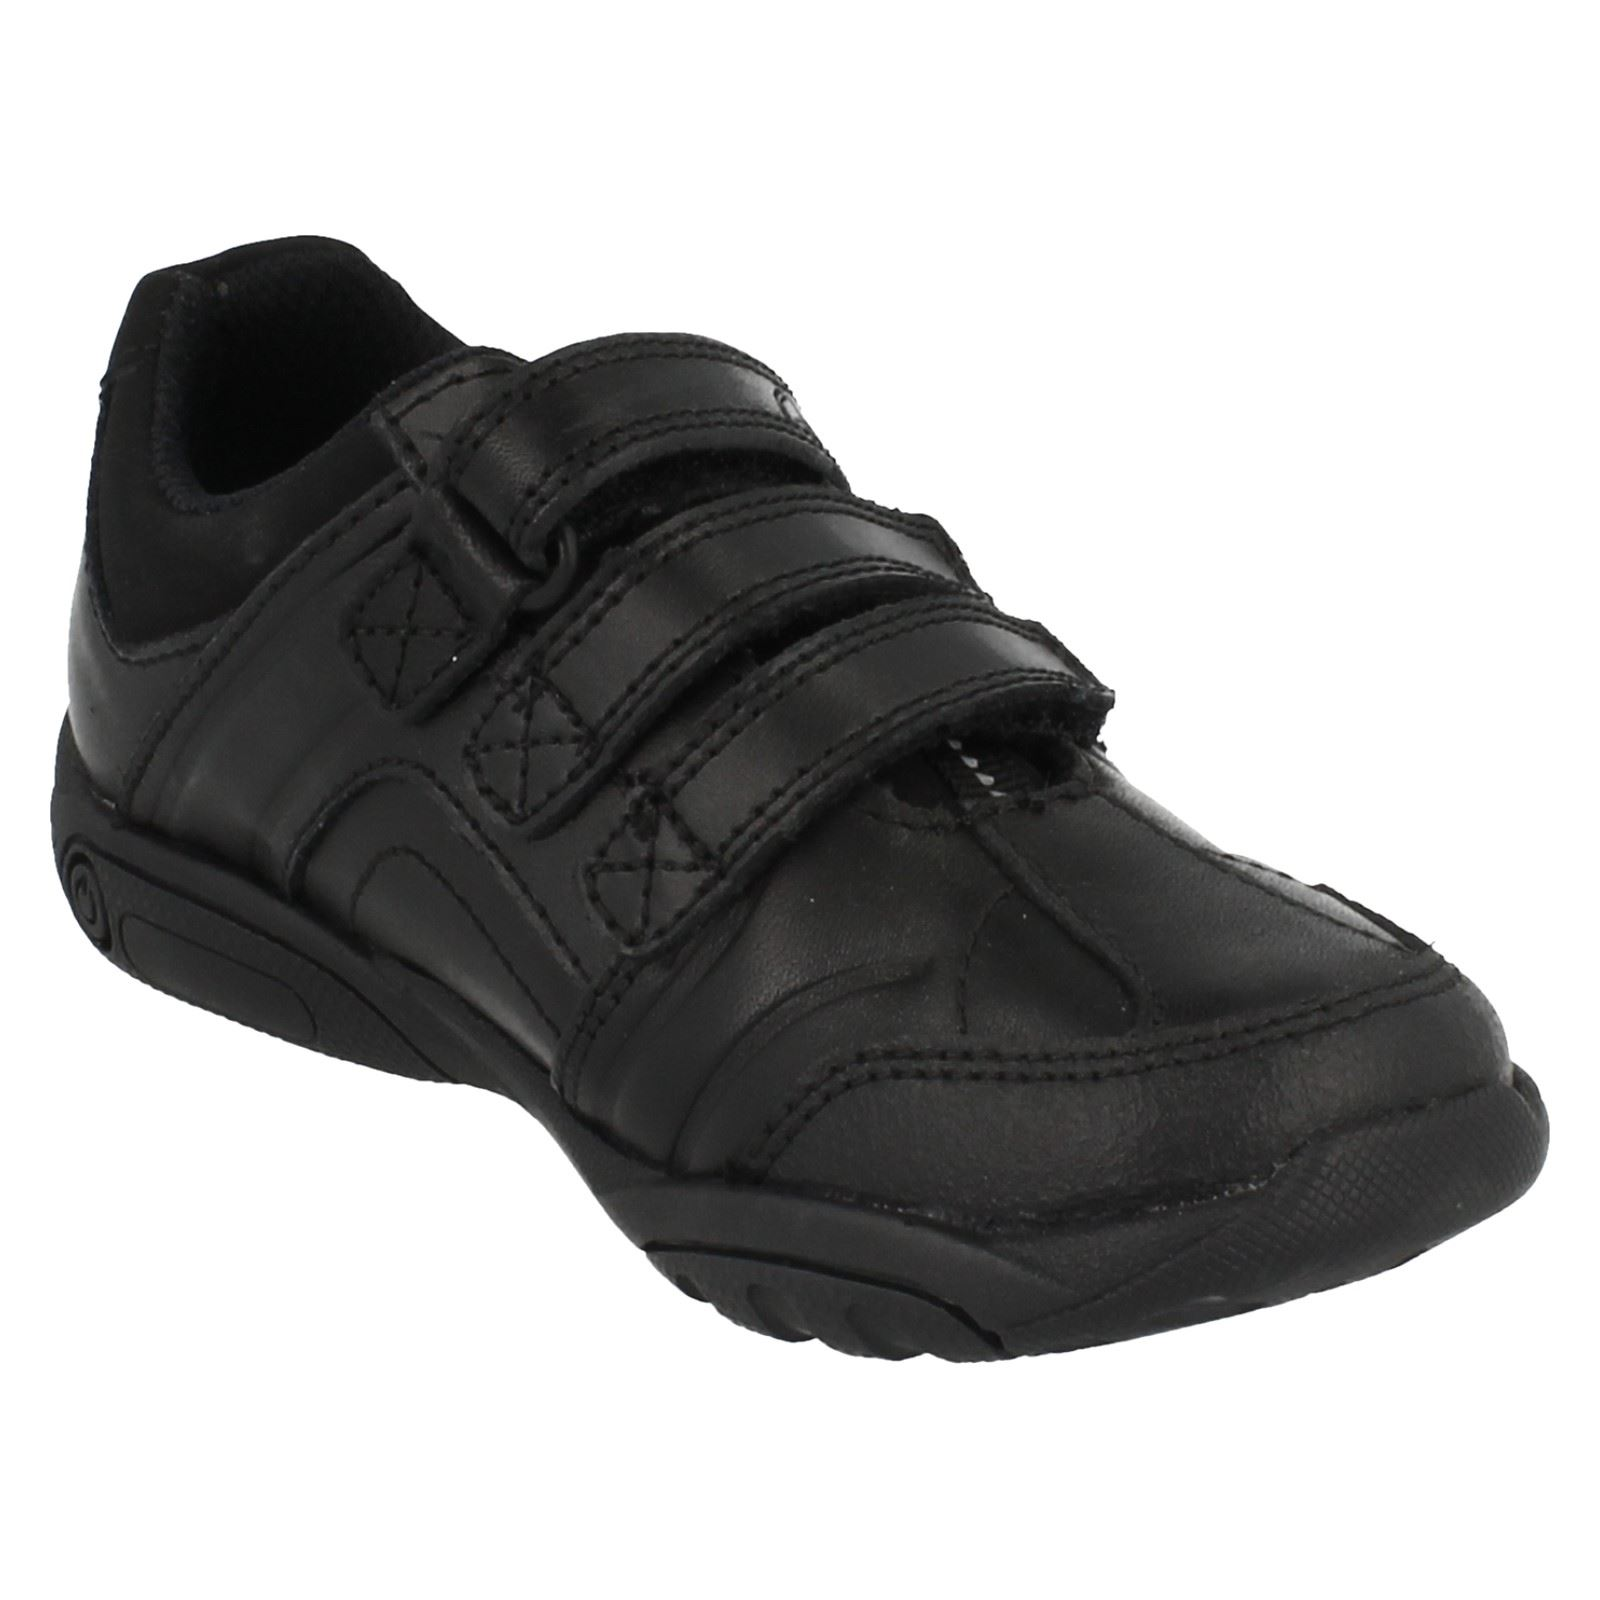 Clarks Boys School Shoes - Nano Diffuse